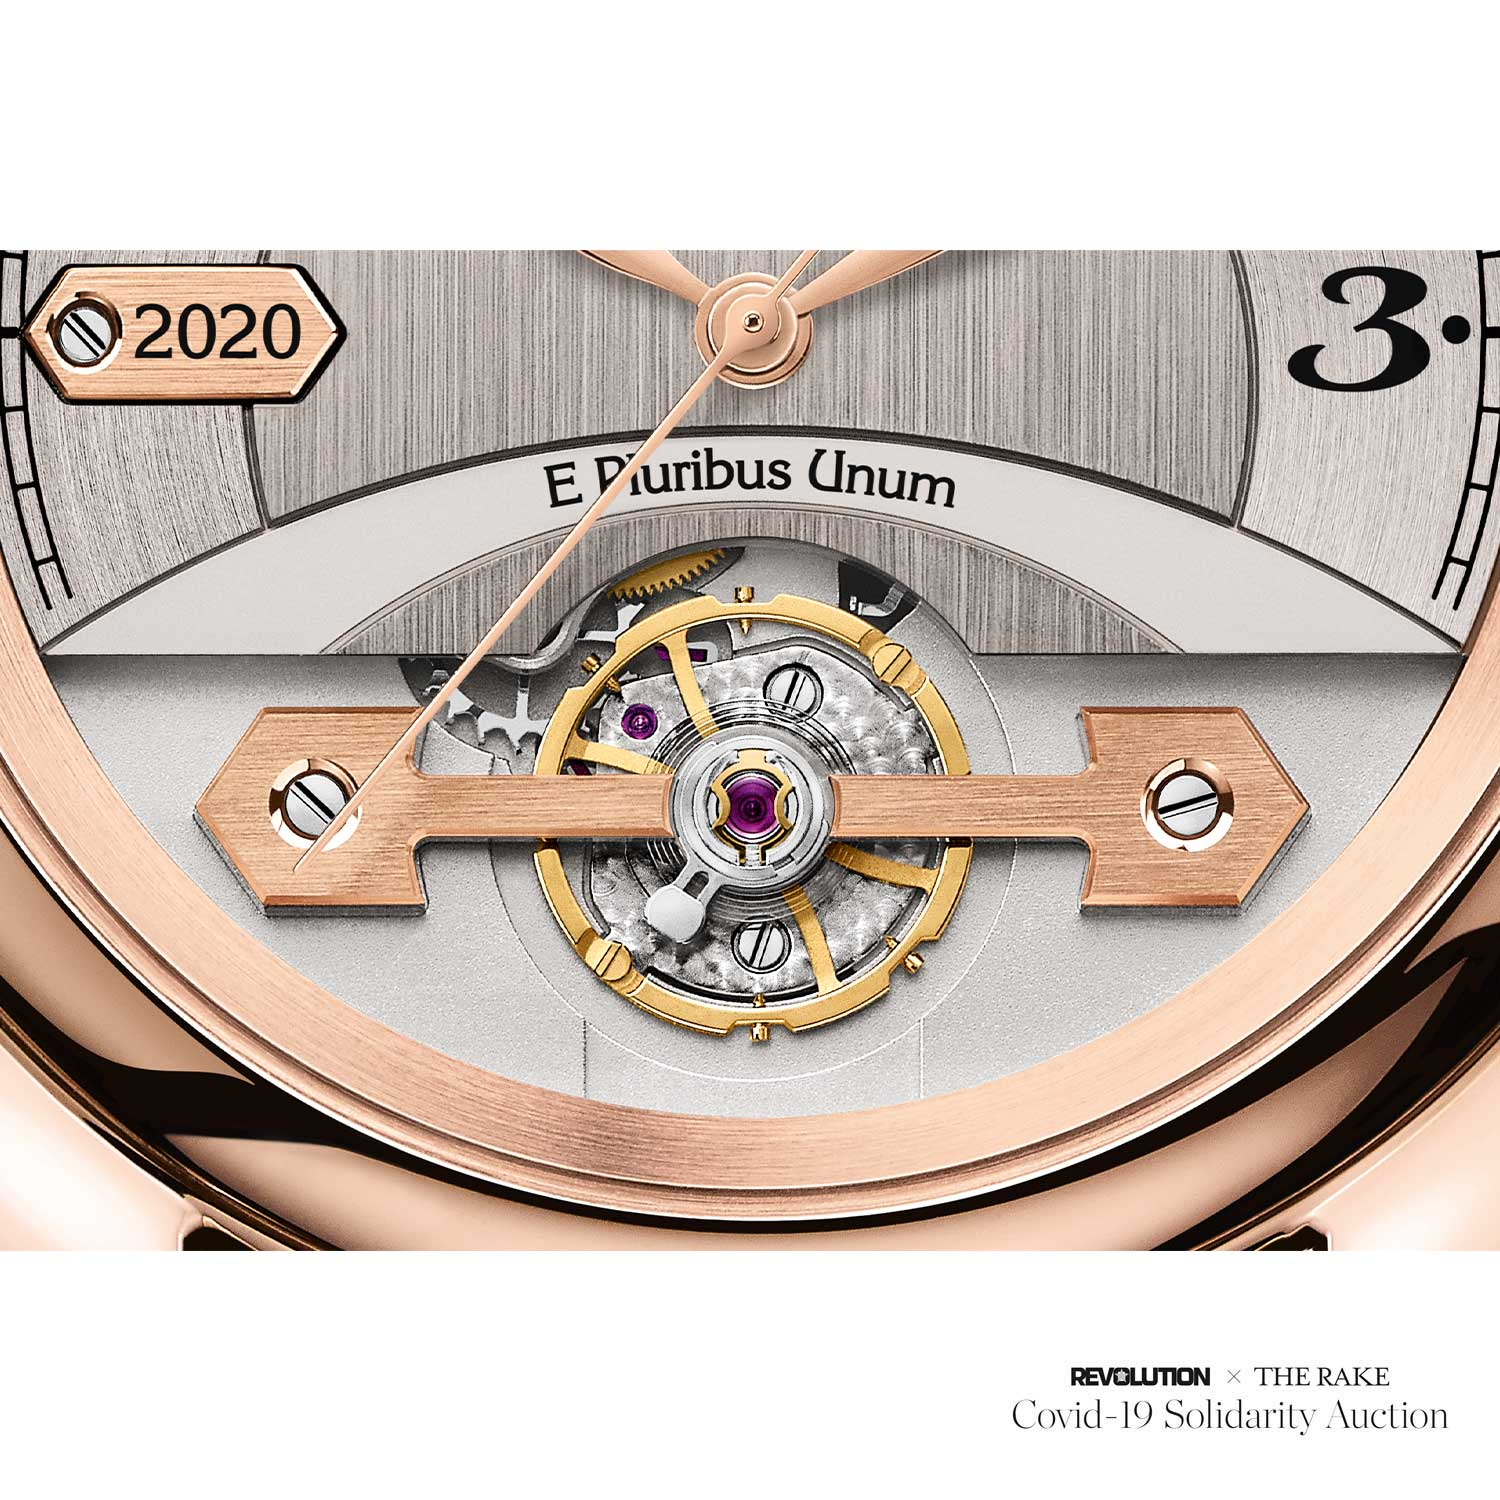 "Place Girardet Prototype with Special Engraving ""E Pluribus Unum"" above the solitary bridge on the balance wheel, made for Revolution x The Rake Covid-19 Solidarity Auction"